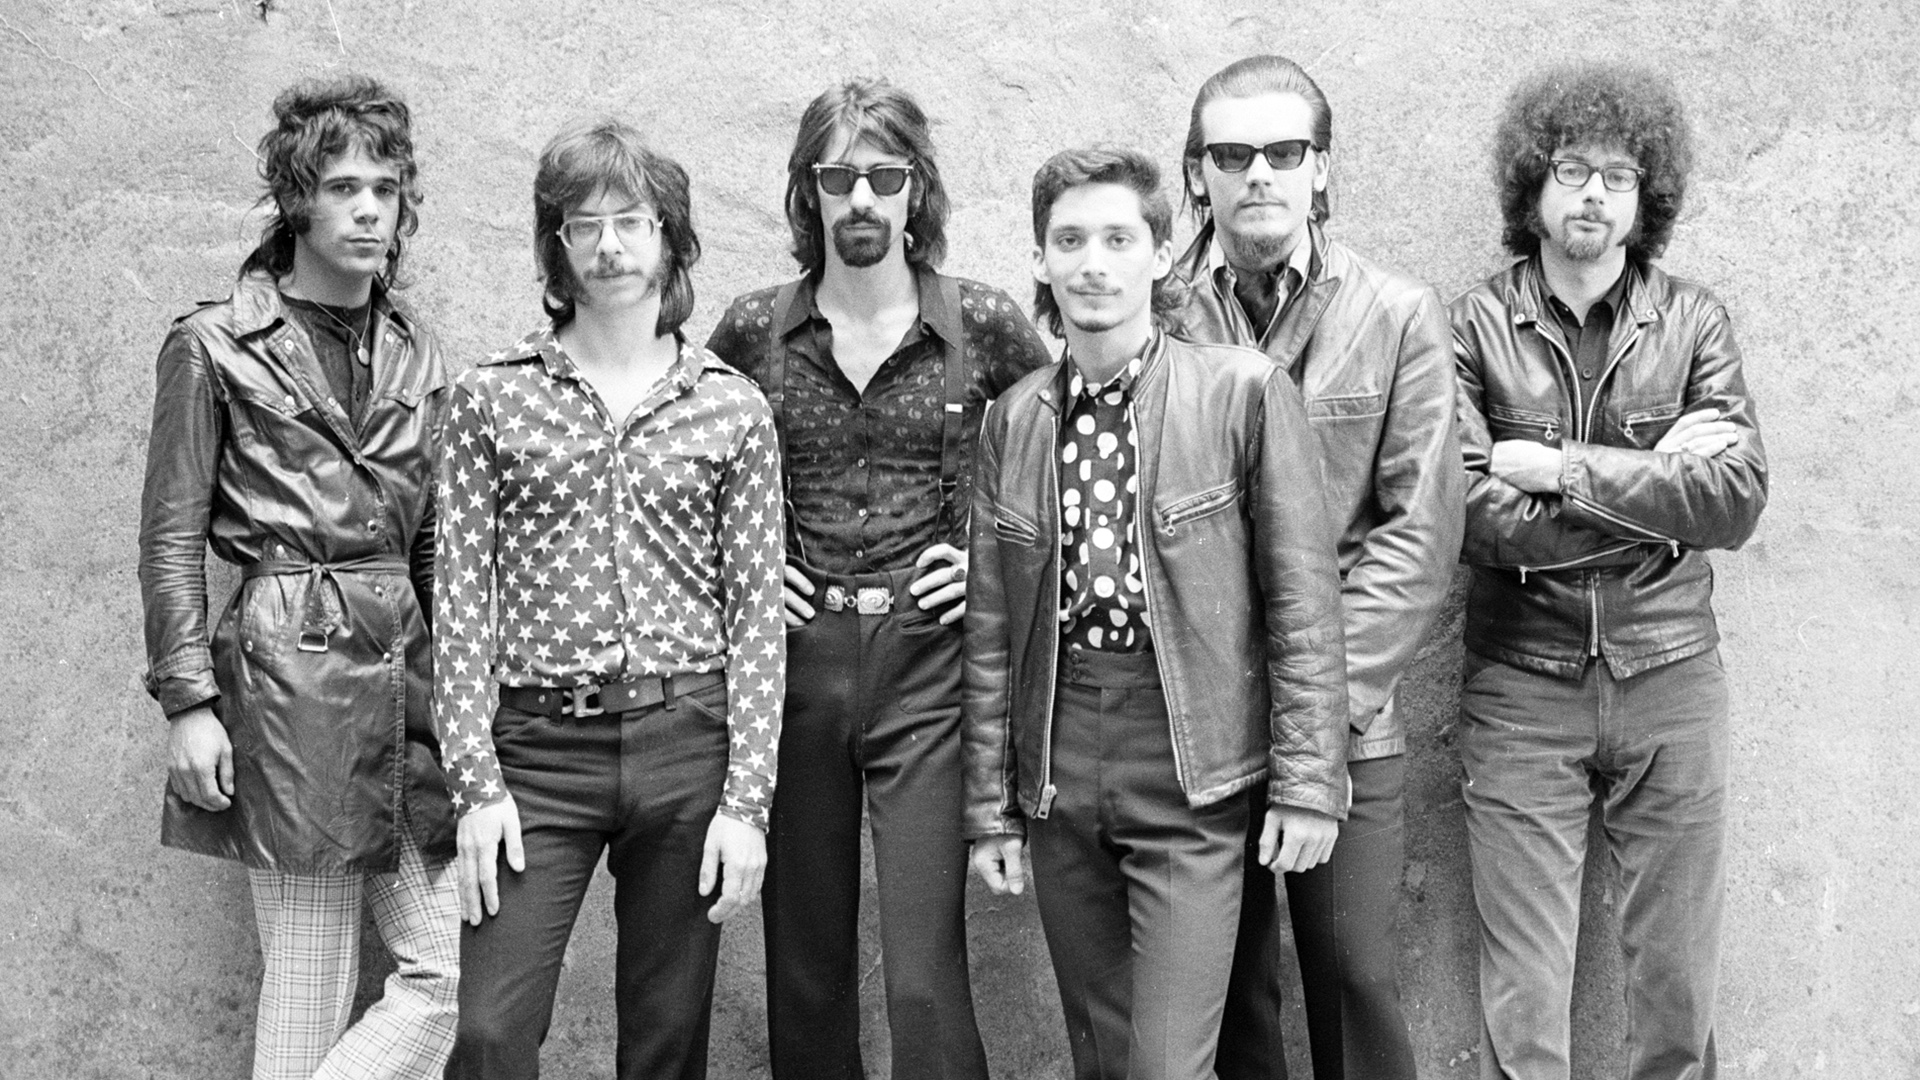 Centerfold av The J. Geils Band